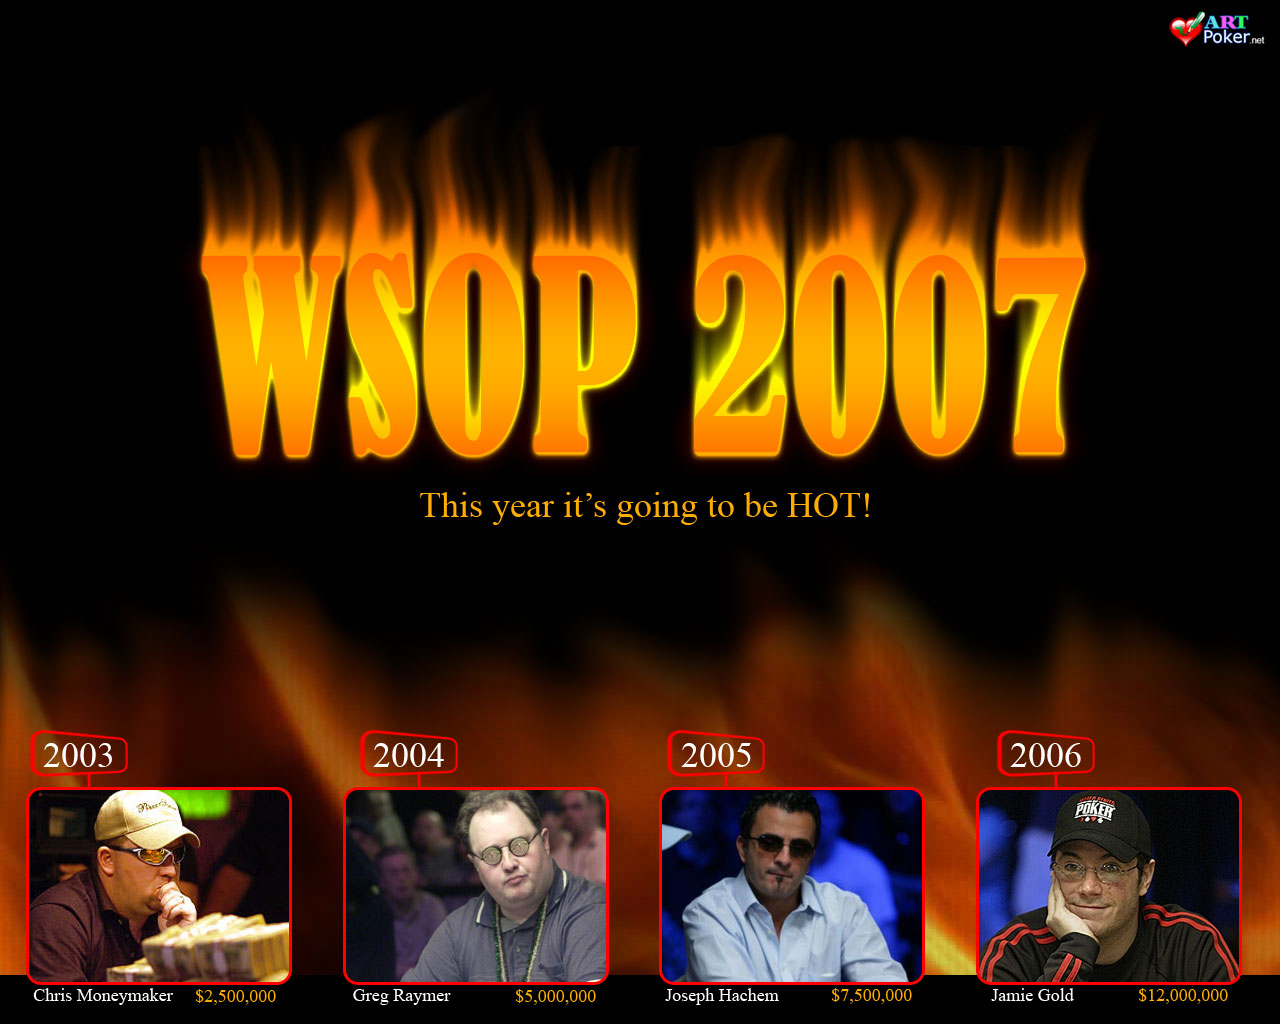 WSOP 2007 Main Event - The Winners 1280x1024